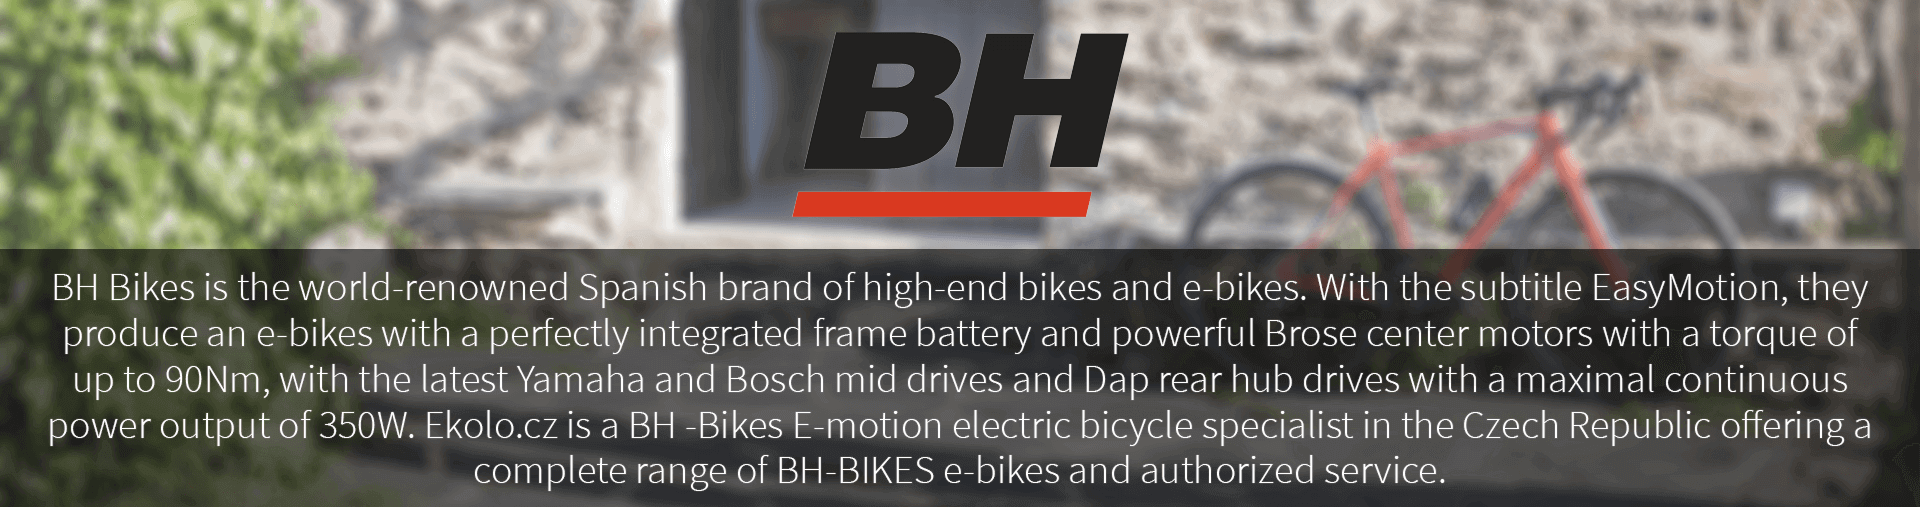 BH Bikes is the world-renowned Spanish brand of high-end bikes and e-bikes. With the subtitle EasyMotion, they produce an e-bikes with a perfectly integrated frame battery and powerful Brose center motors with a torque of up to 90Nm, with the latest Yamaha and Bosch mid drives and Dap rear hub drives with a maximal continuous power output of 350W. Ekolo.cz is a BH -Bikes E-motion electric bicycle specialist in the Czech Republic offering a complete range of BH-BIKES e-bikes and authorized service.